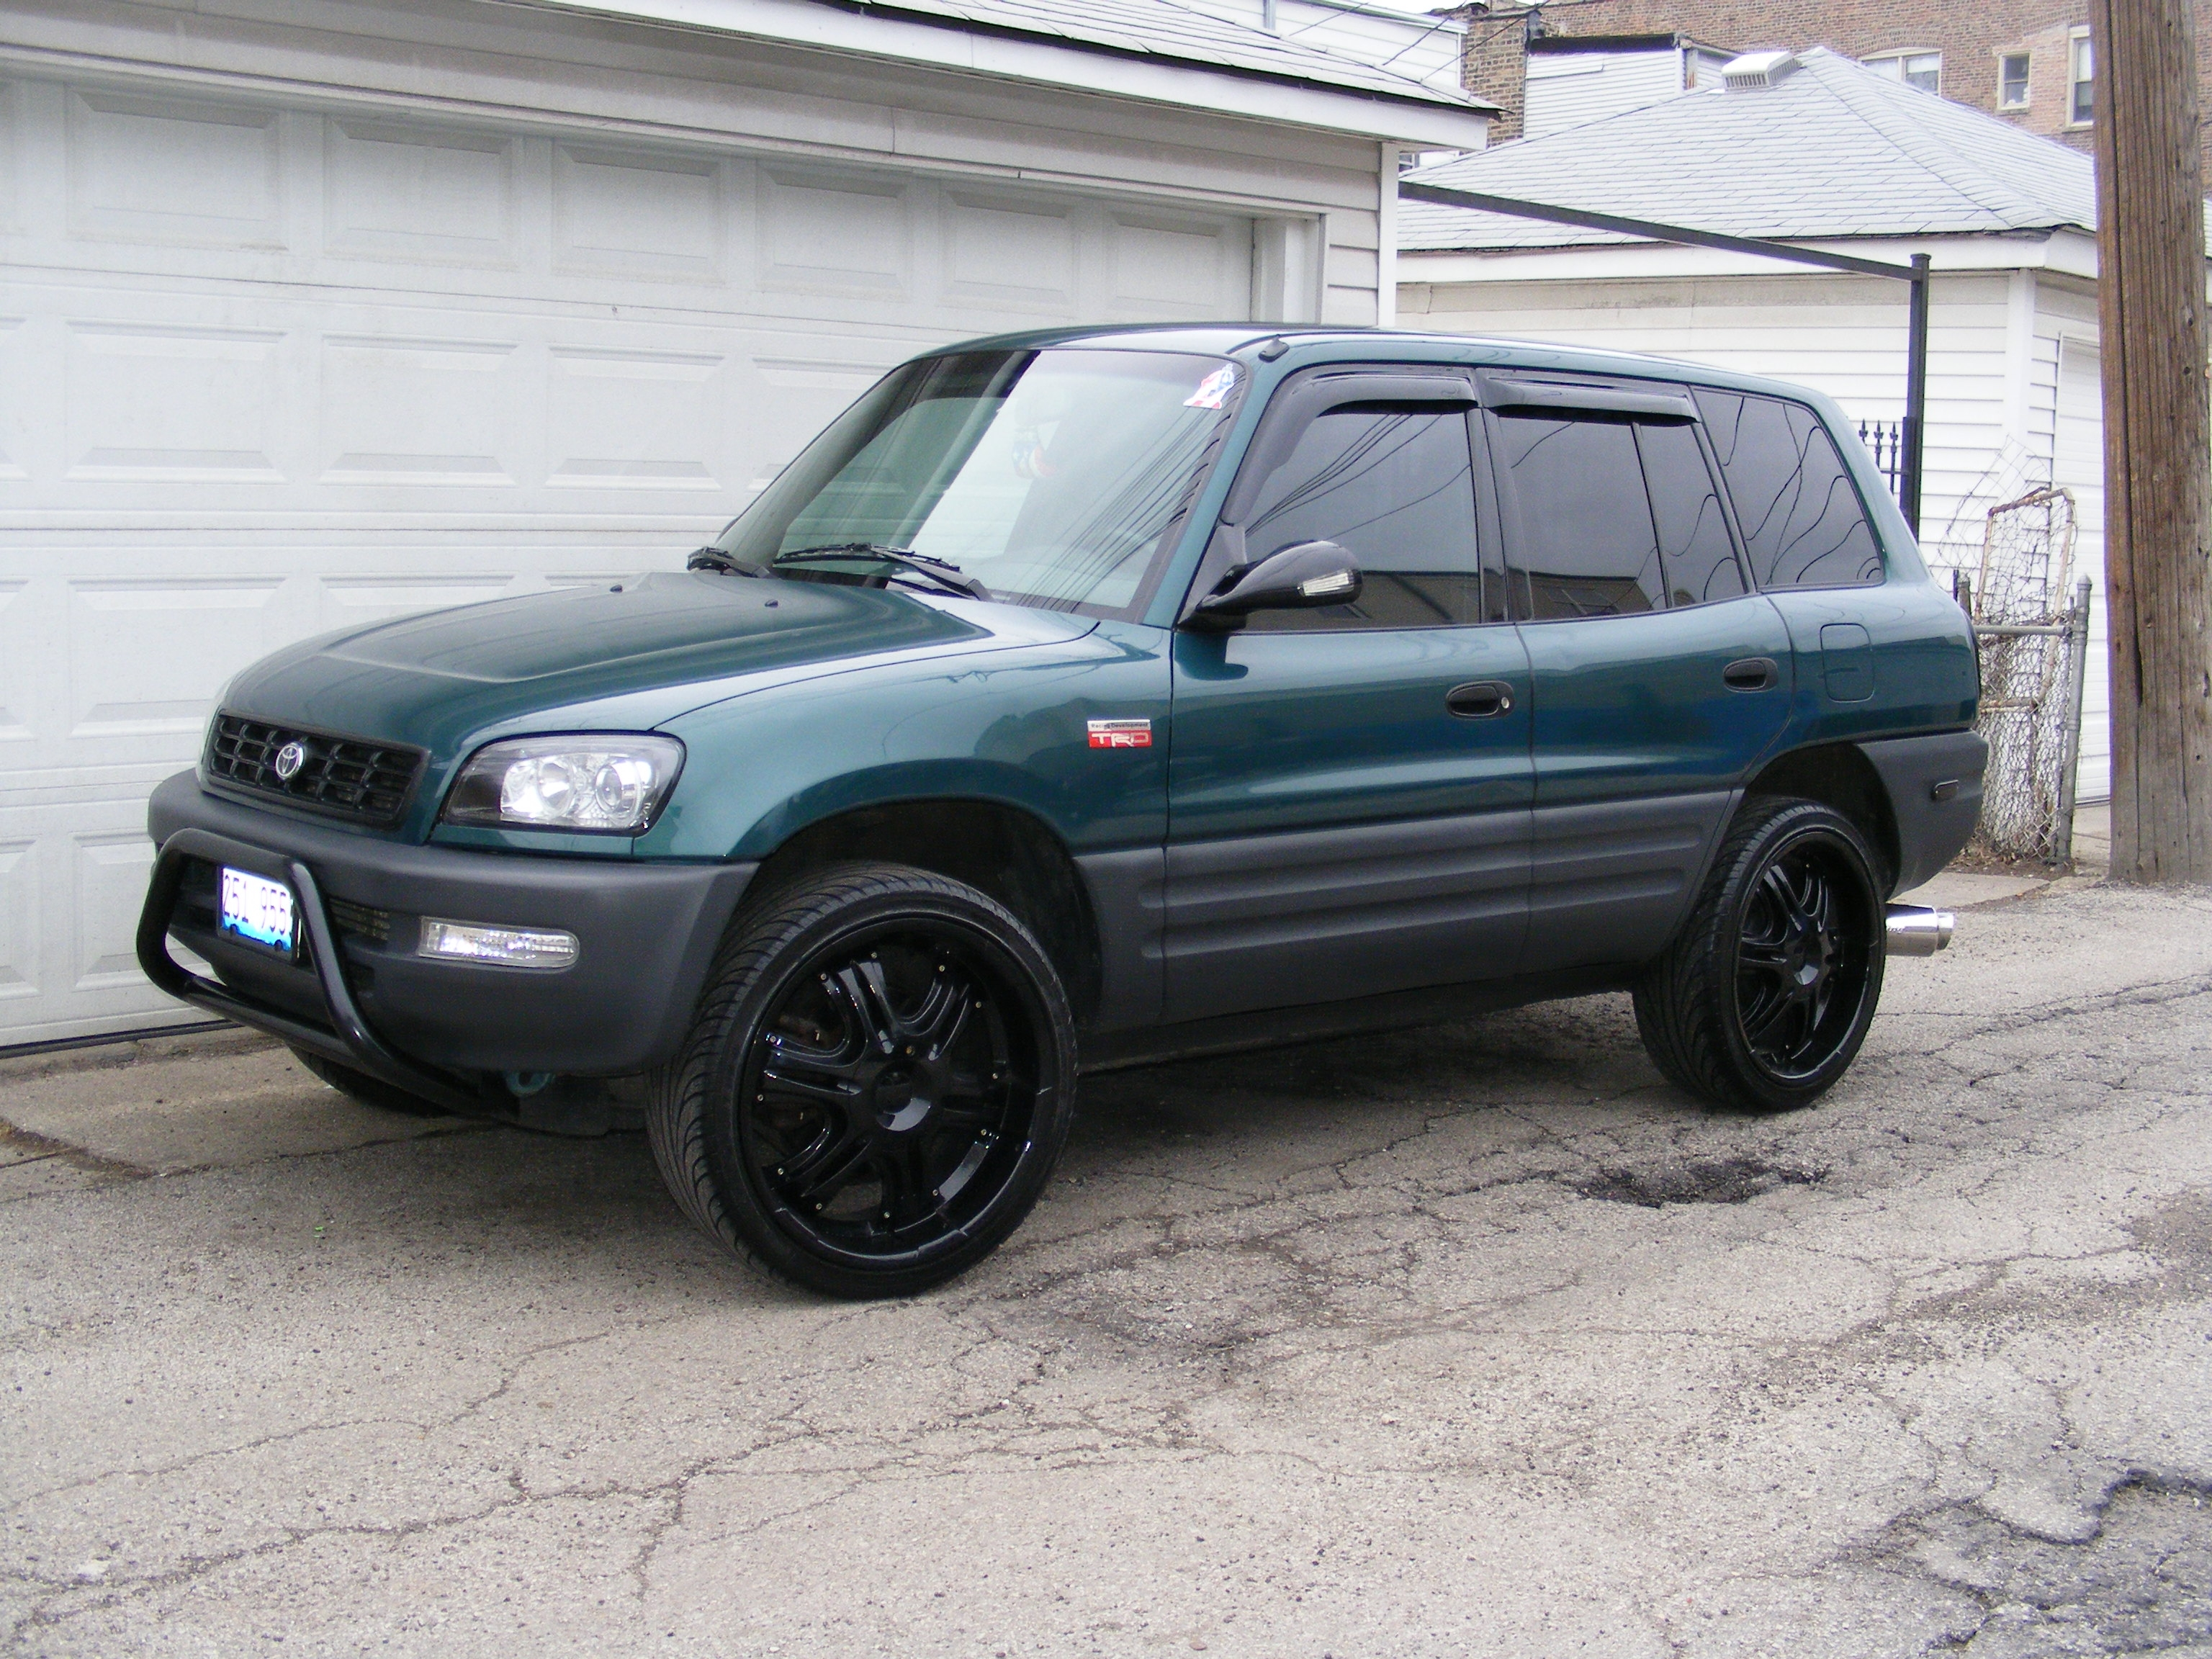 c soto 1997 toyota rav4 specs photos modification info at cardomain. Black Bedroom Furniture Sets. Home Design Ideas